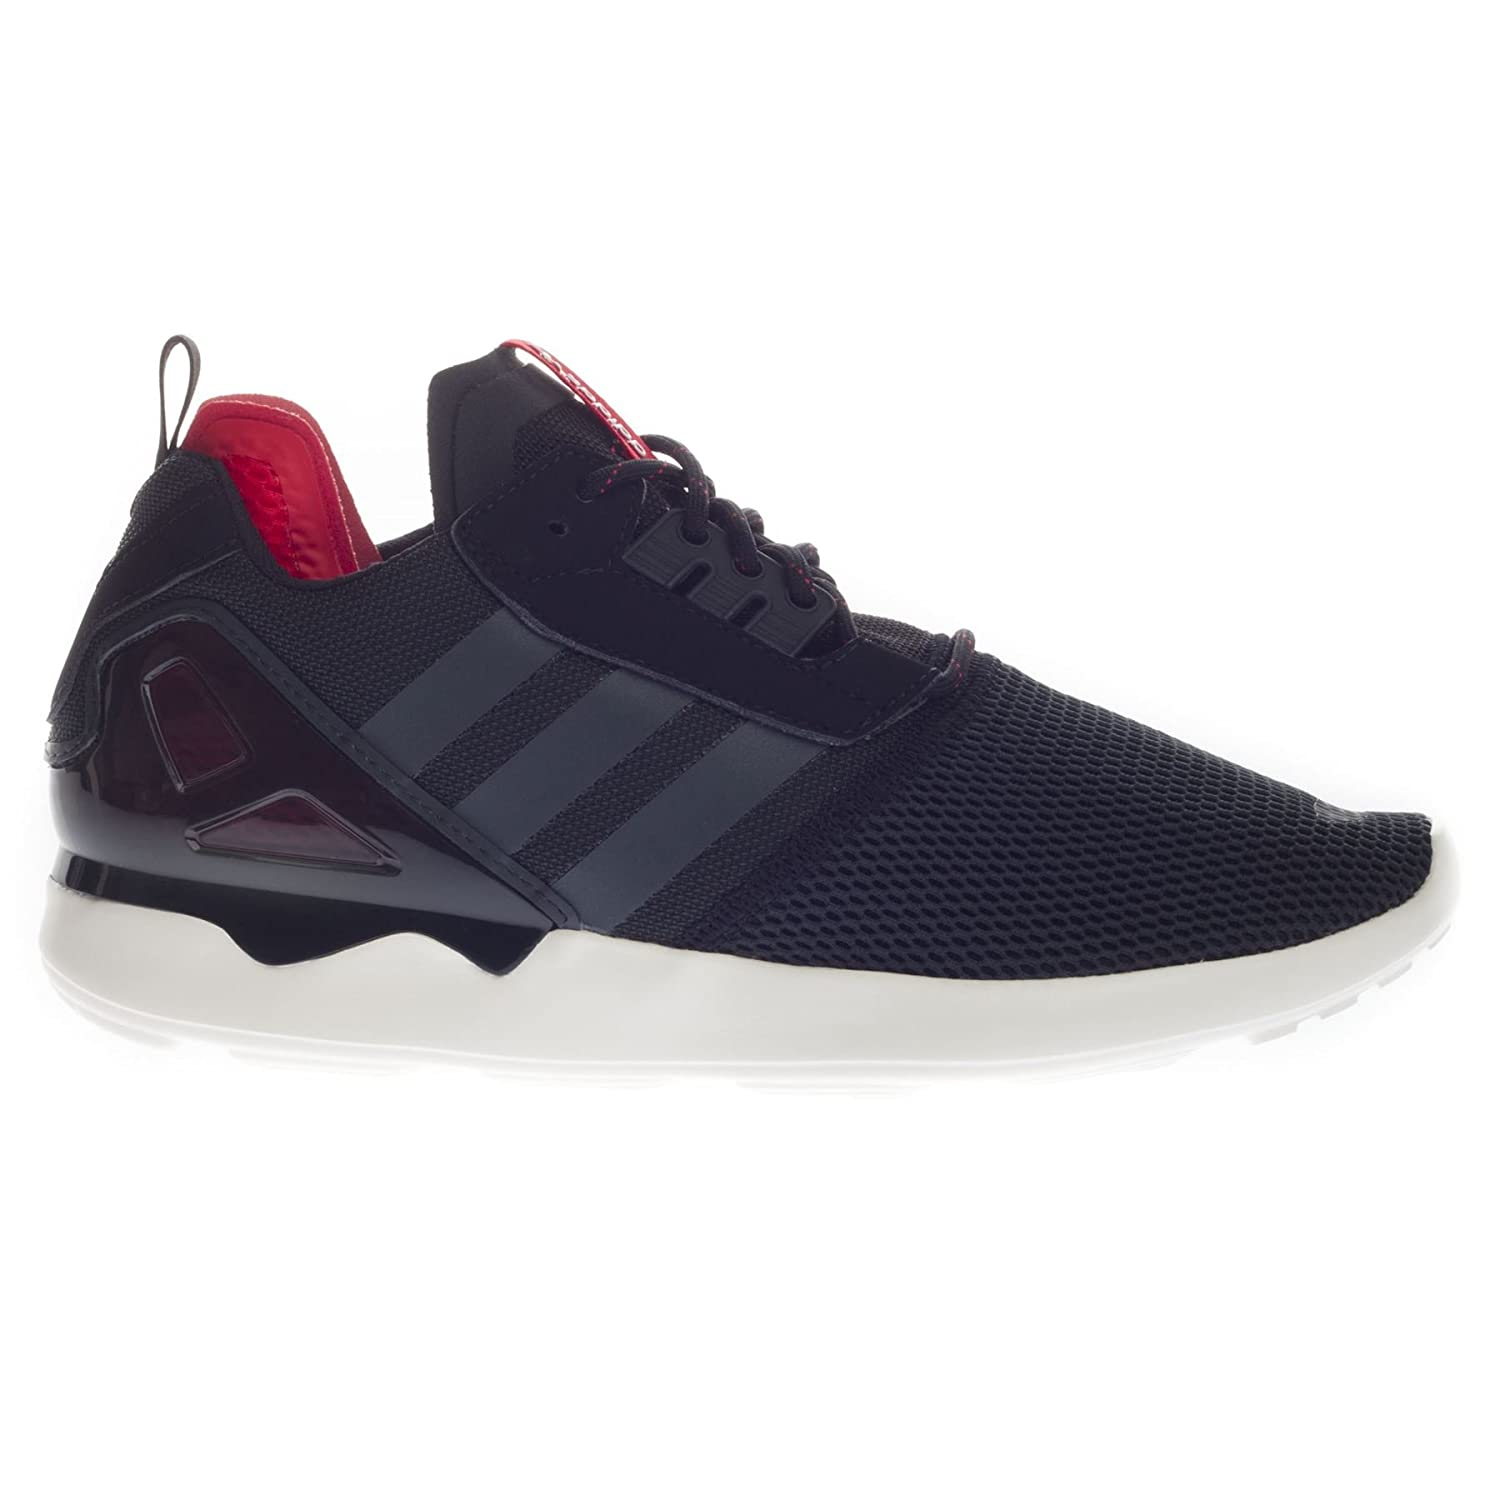 0490bb3fe Adidas Mens ZX 8000 Boost Originals Running Shoes Black White Red sale now  76S717